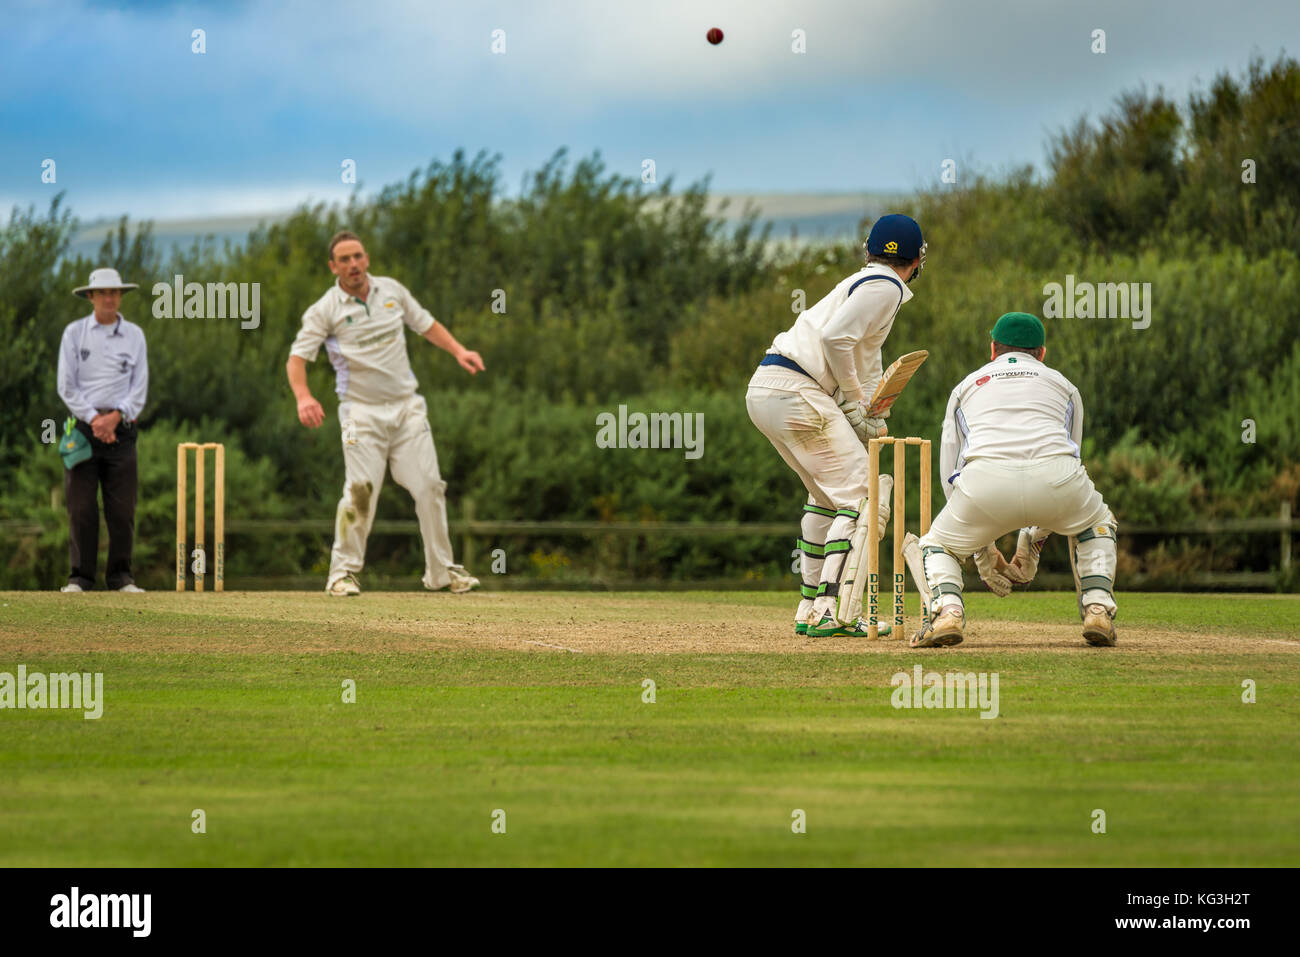 A batsman prepares to play a shot during a Sunday League match between two local Cricket teams. - Stock Image